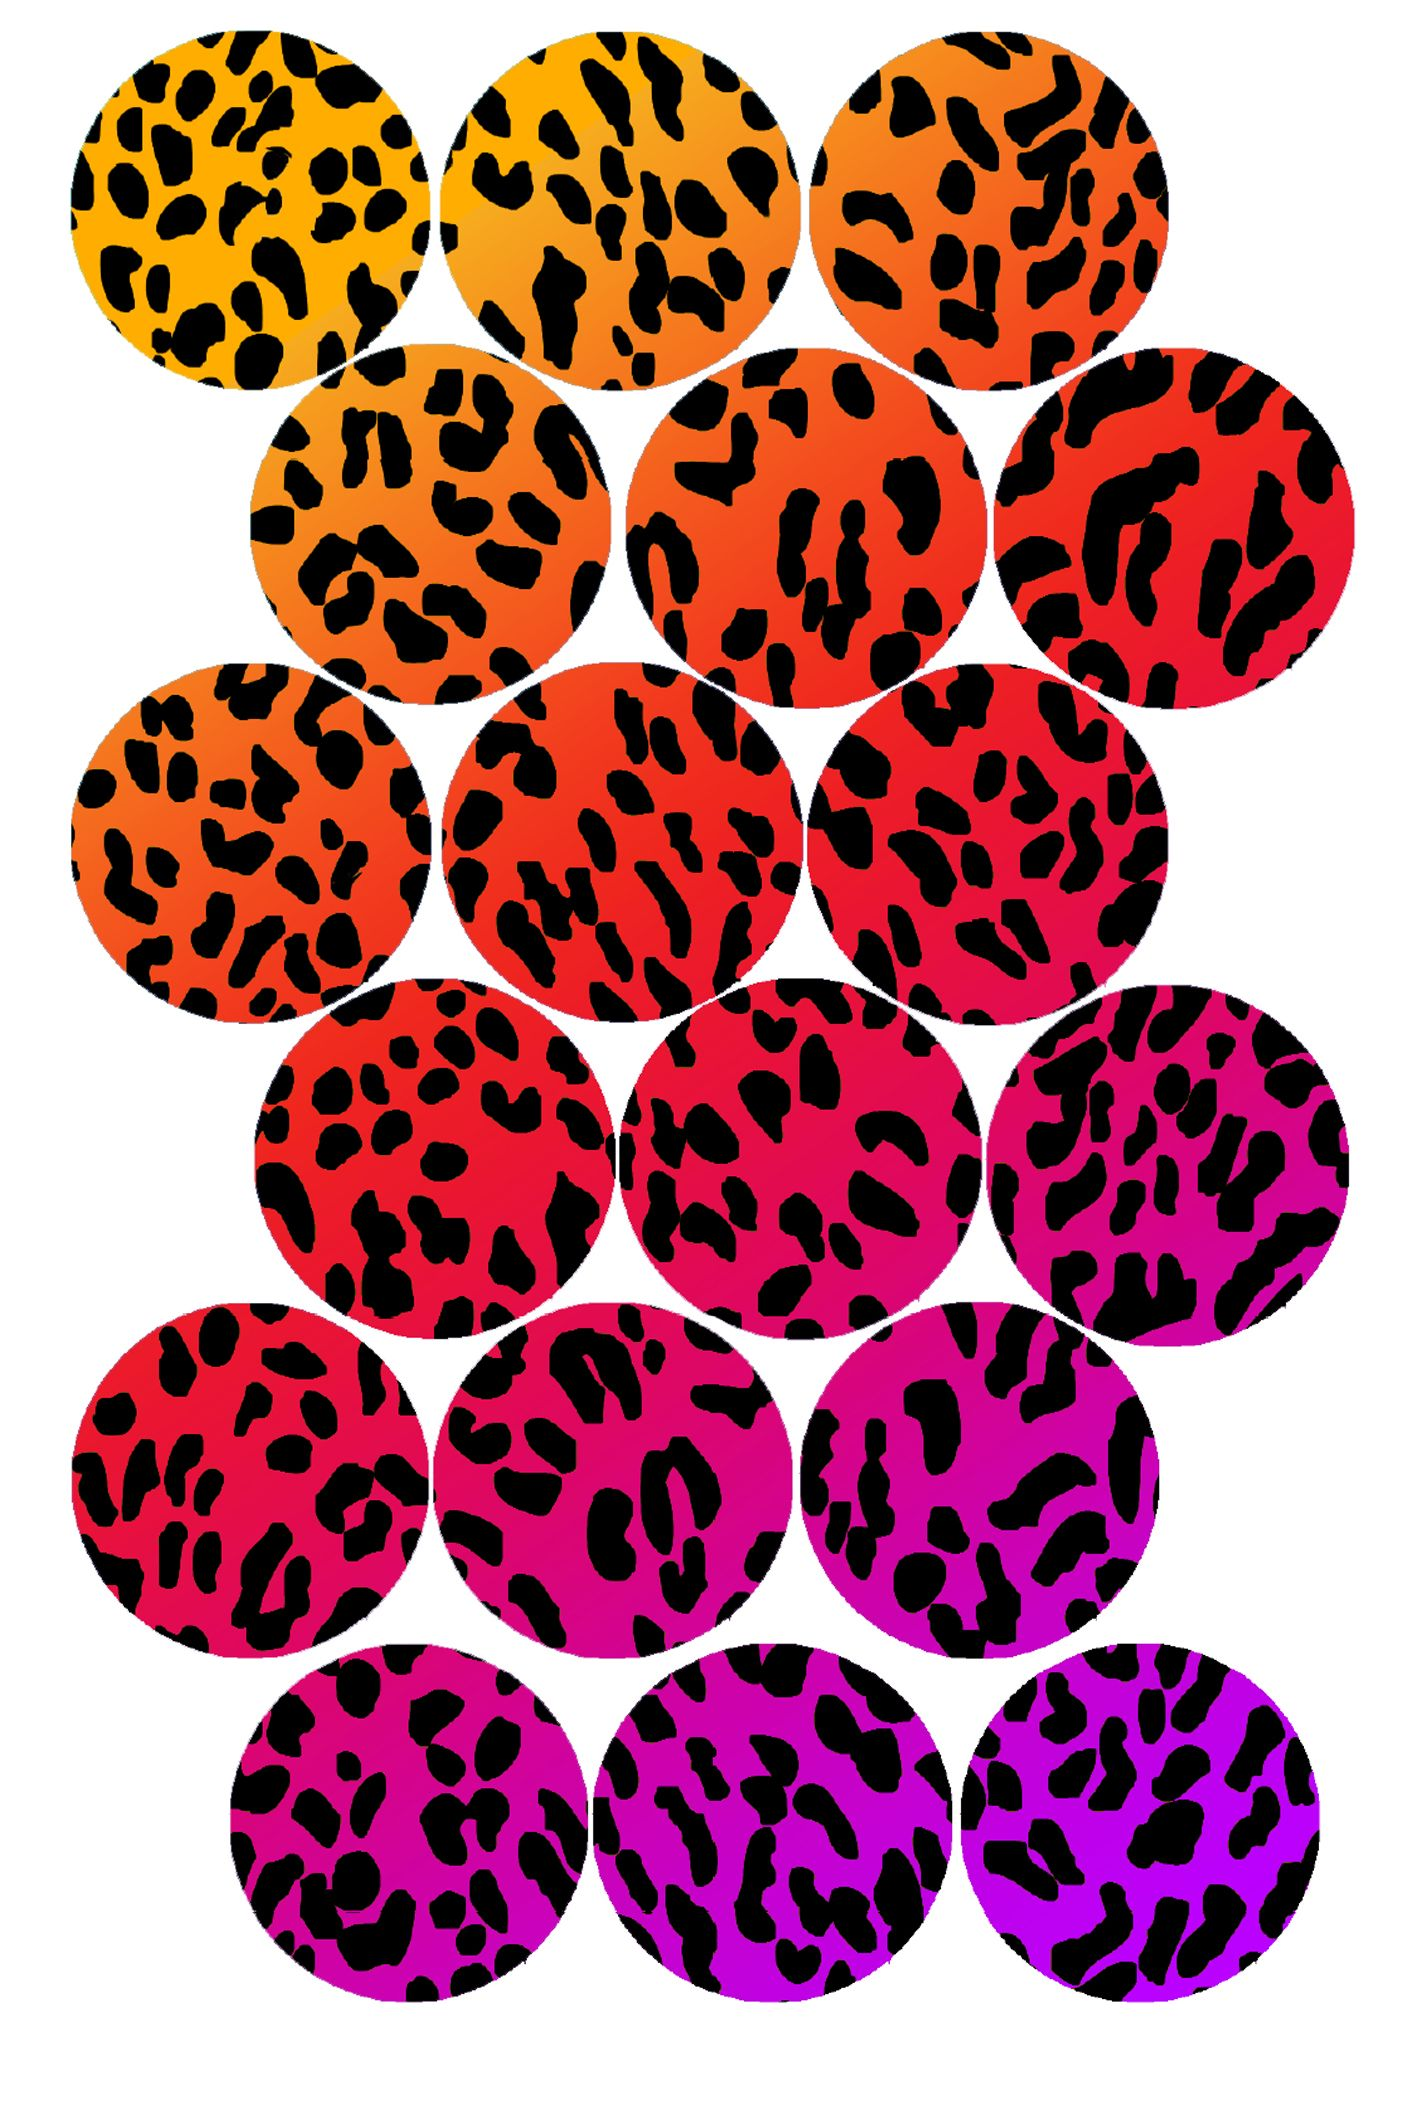 1404x2105 Rainbow Cheetah Print Bottle Cap Image Pack Formatted For Printing